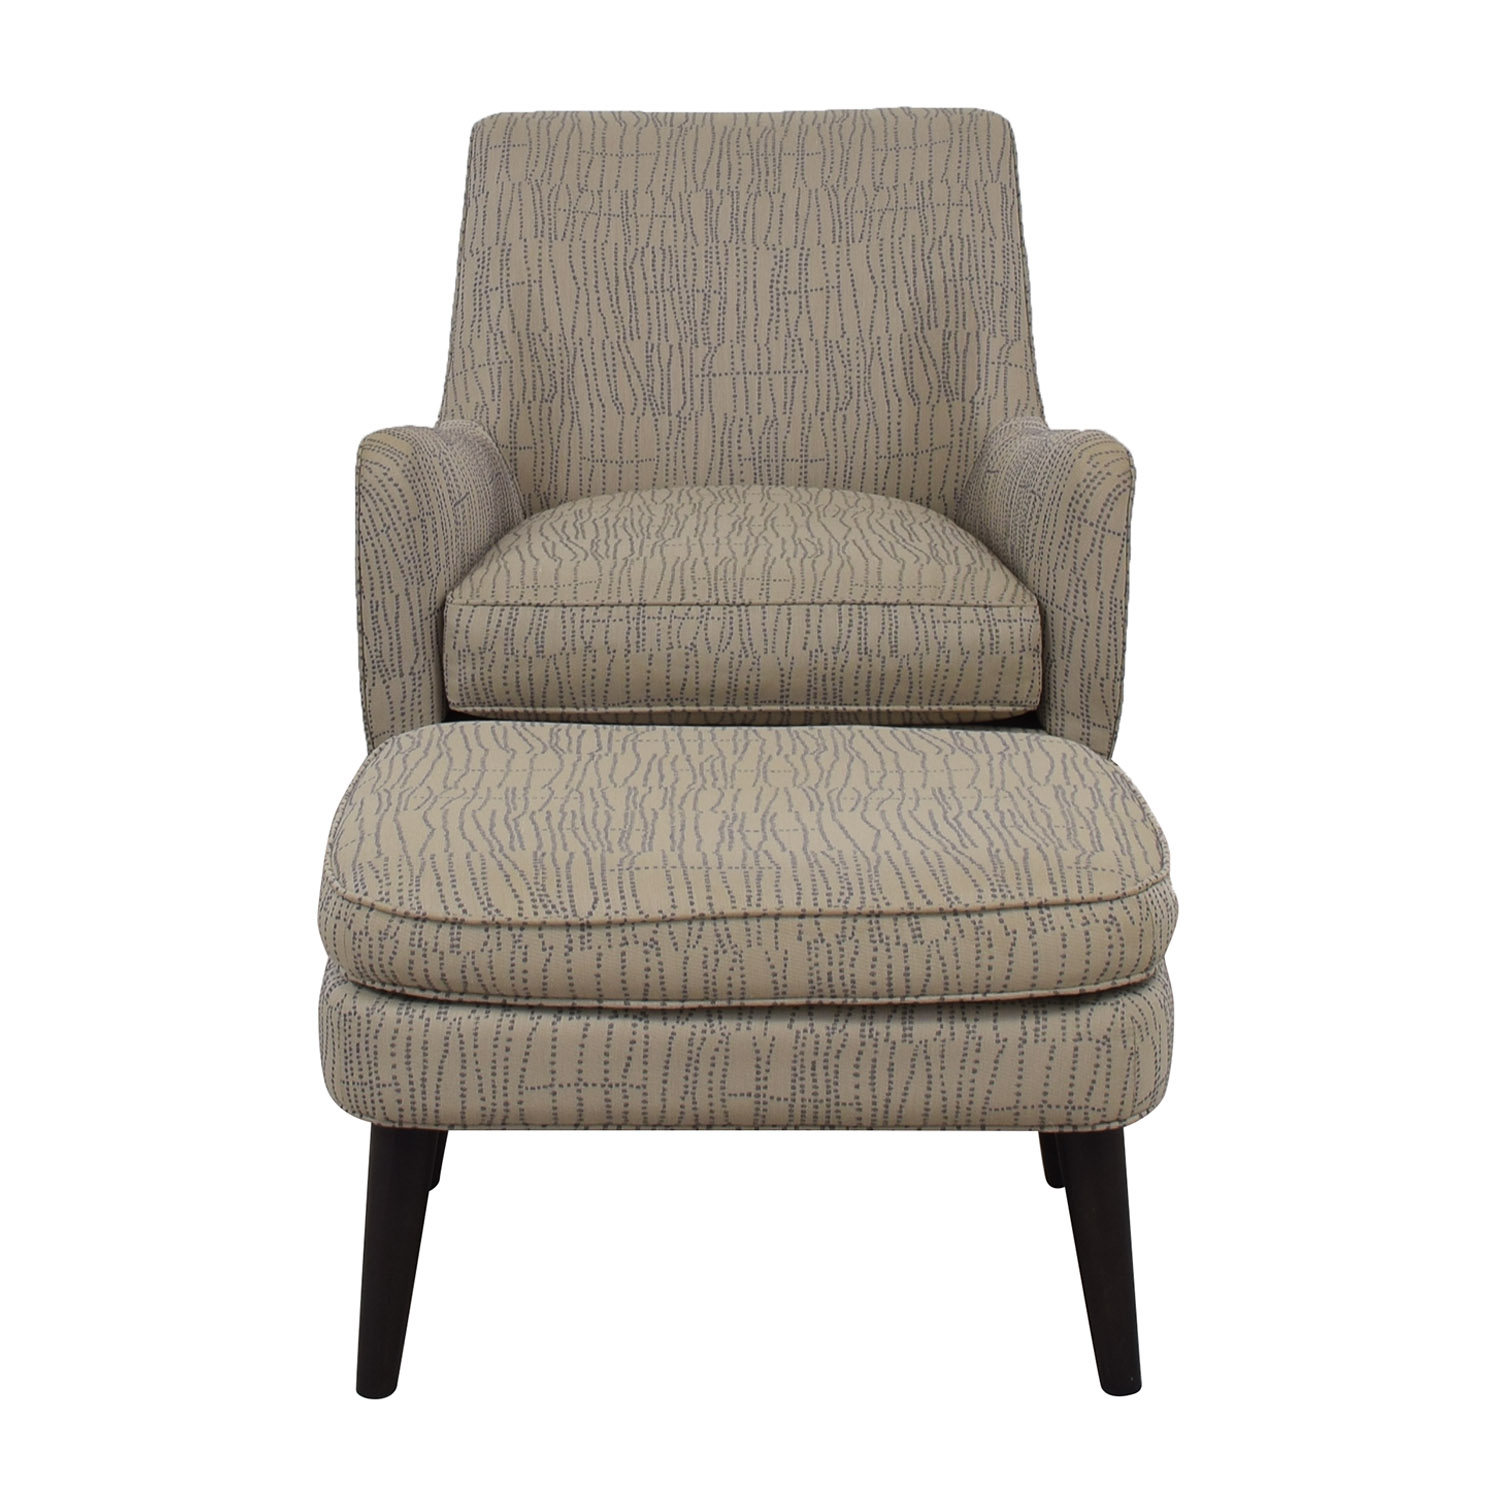 shop Room & Board Room & Board Quinn Grey Chair and Ottoman online